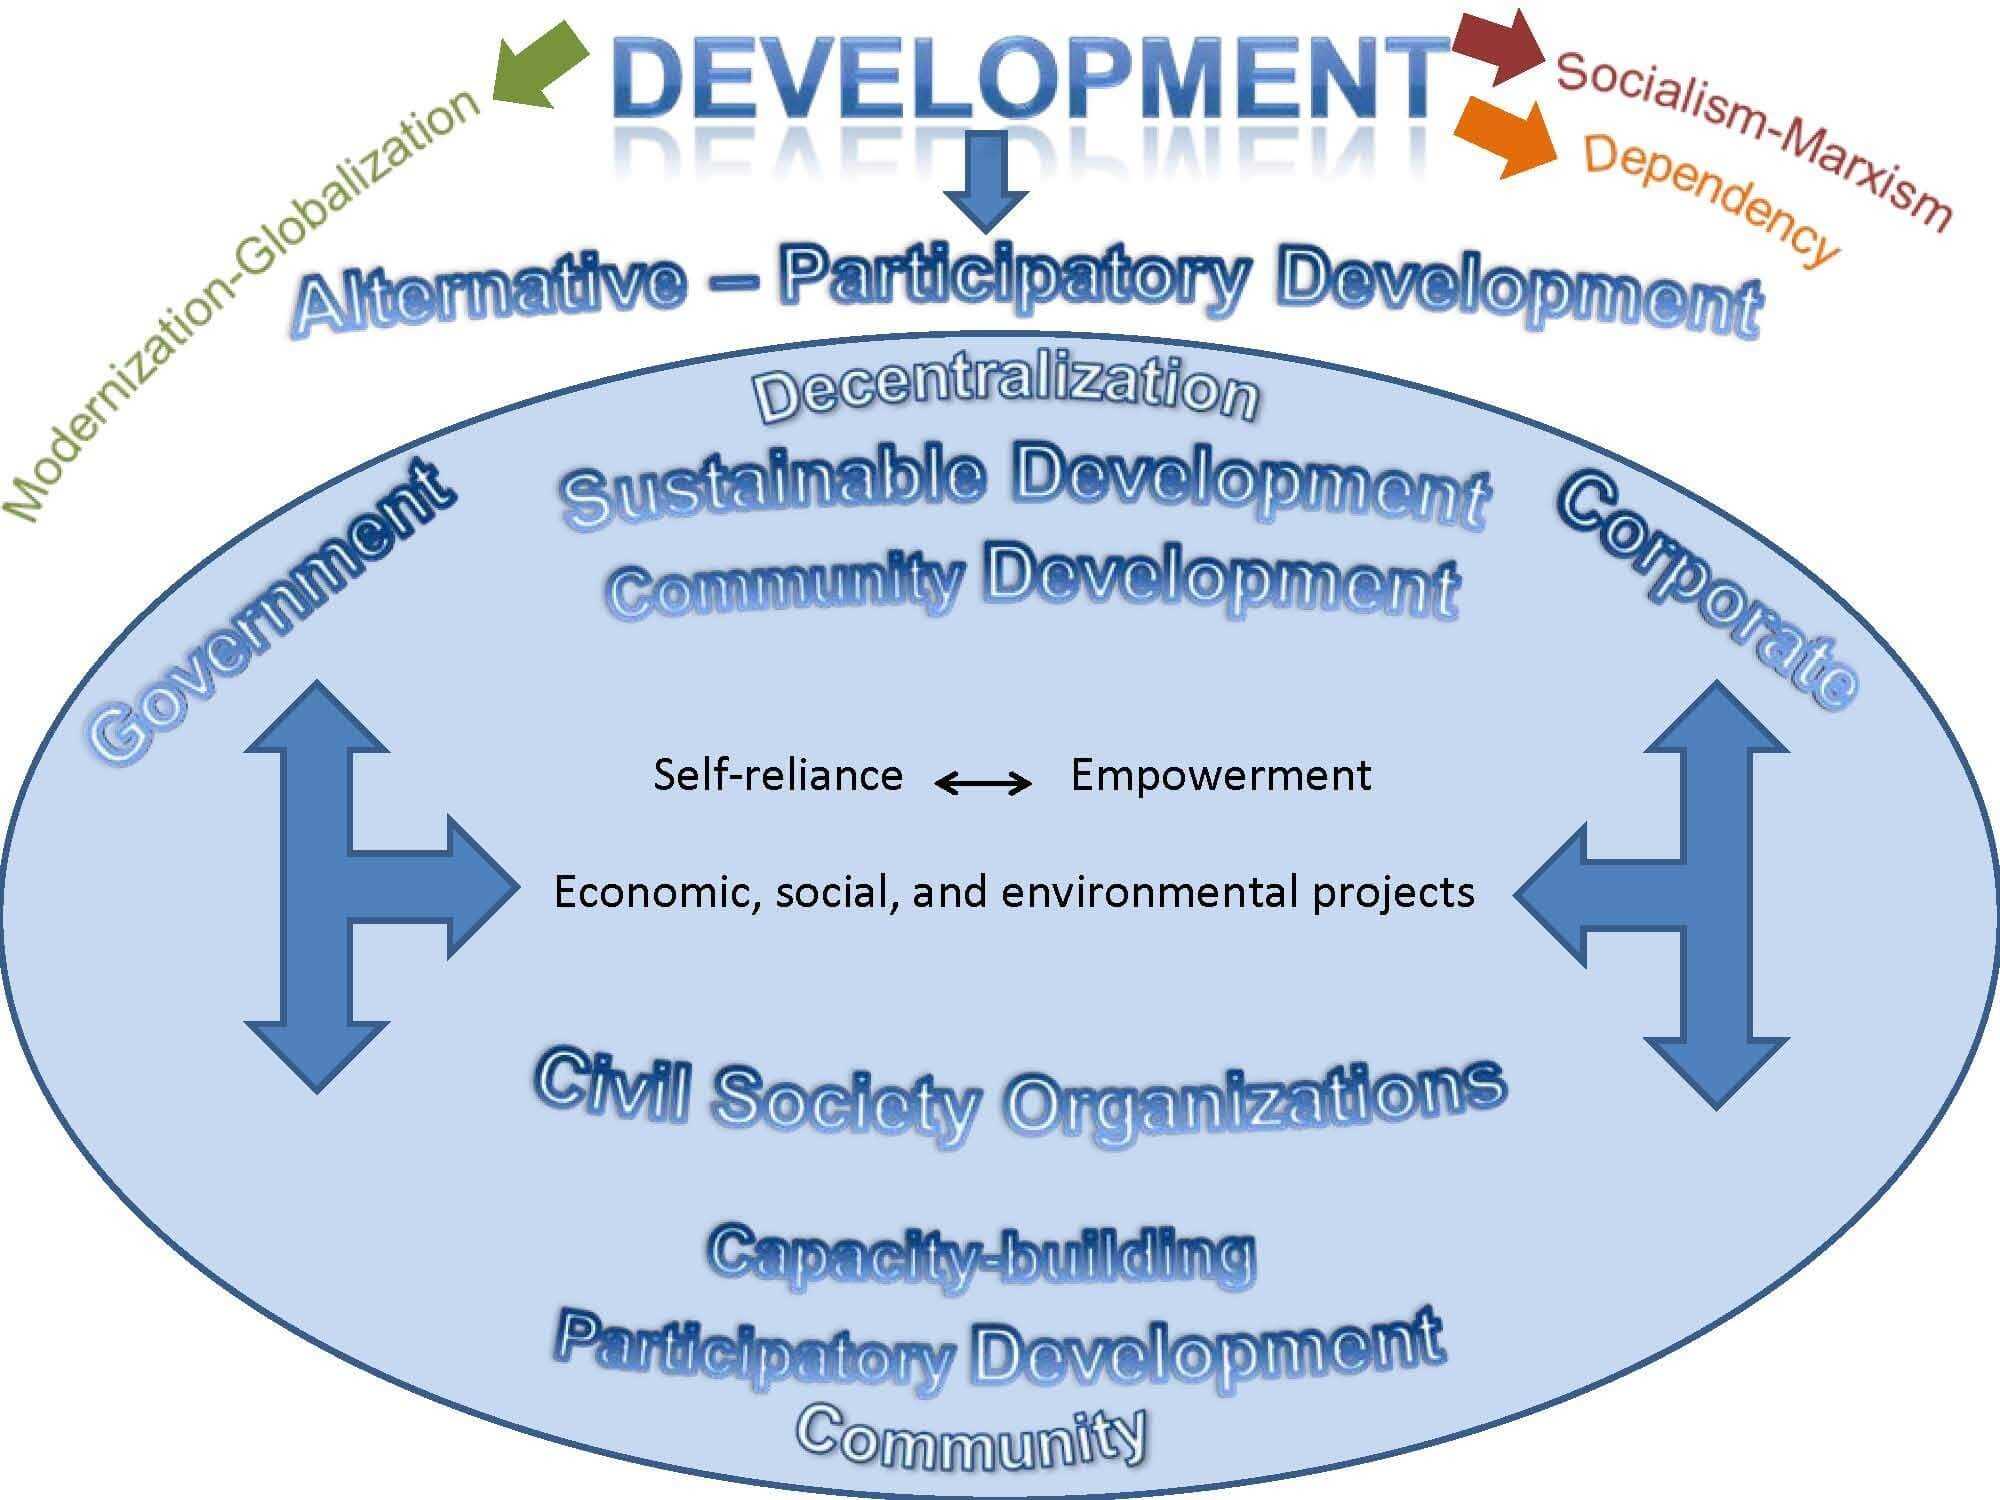 BUILDING A DEFINITION OF DEVELOPMENT